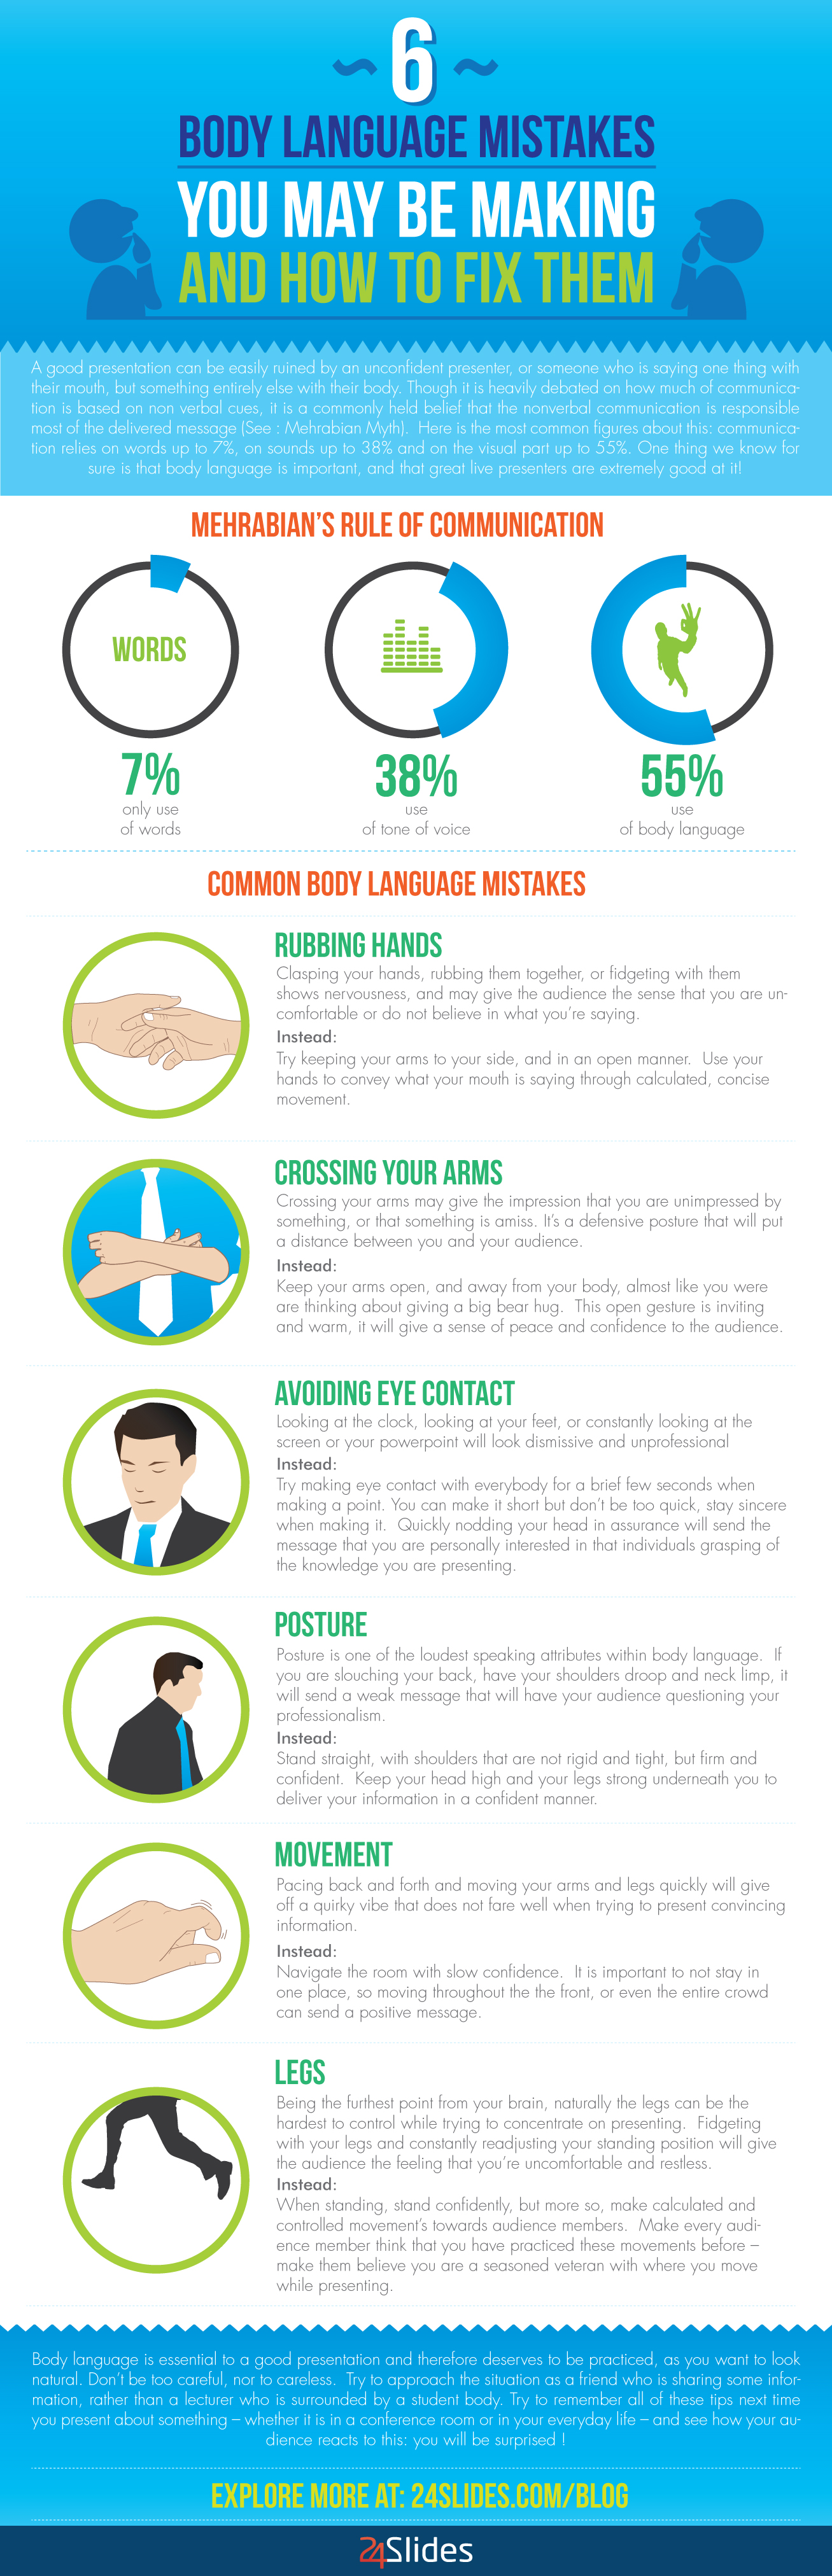 [INFOGRAPHIC] Body Language : 6 Mistakes You May be Making And How to Fix Them - An Infographic from BLOG